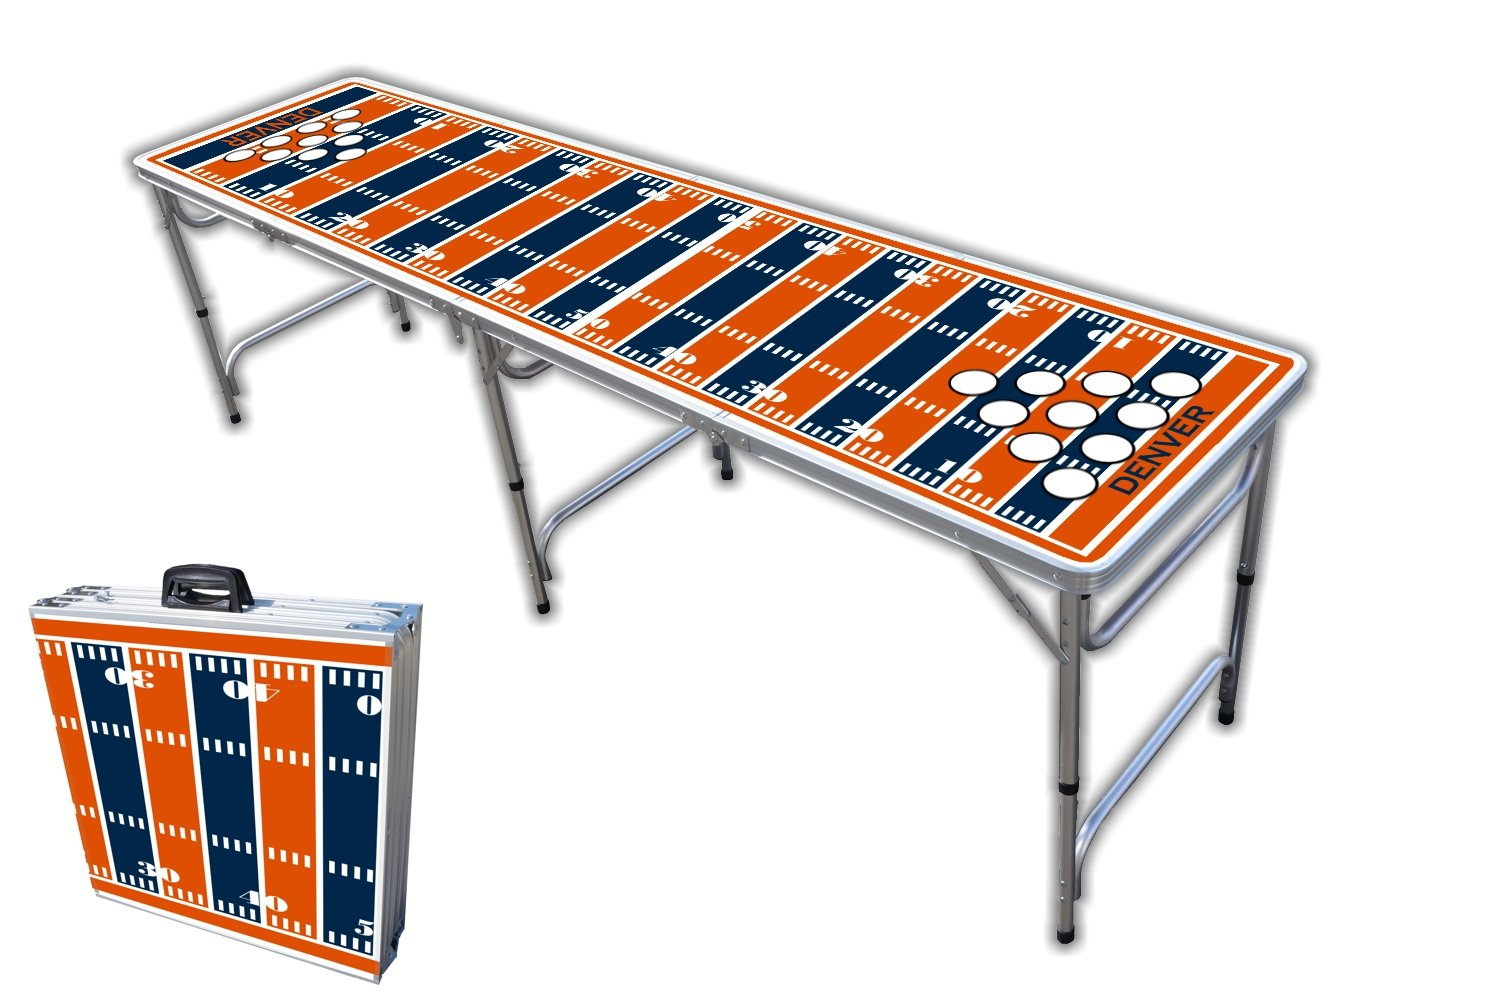 8-Foot Professional Beer Pong Table w/Holes - Denver Football Field Graphic by PartyPongTables.com